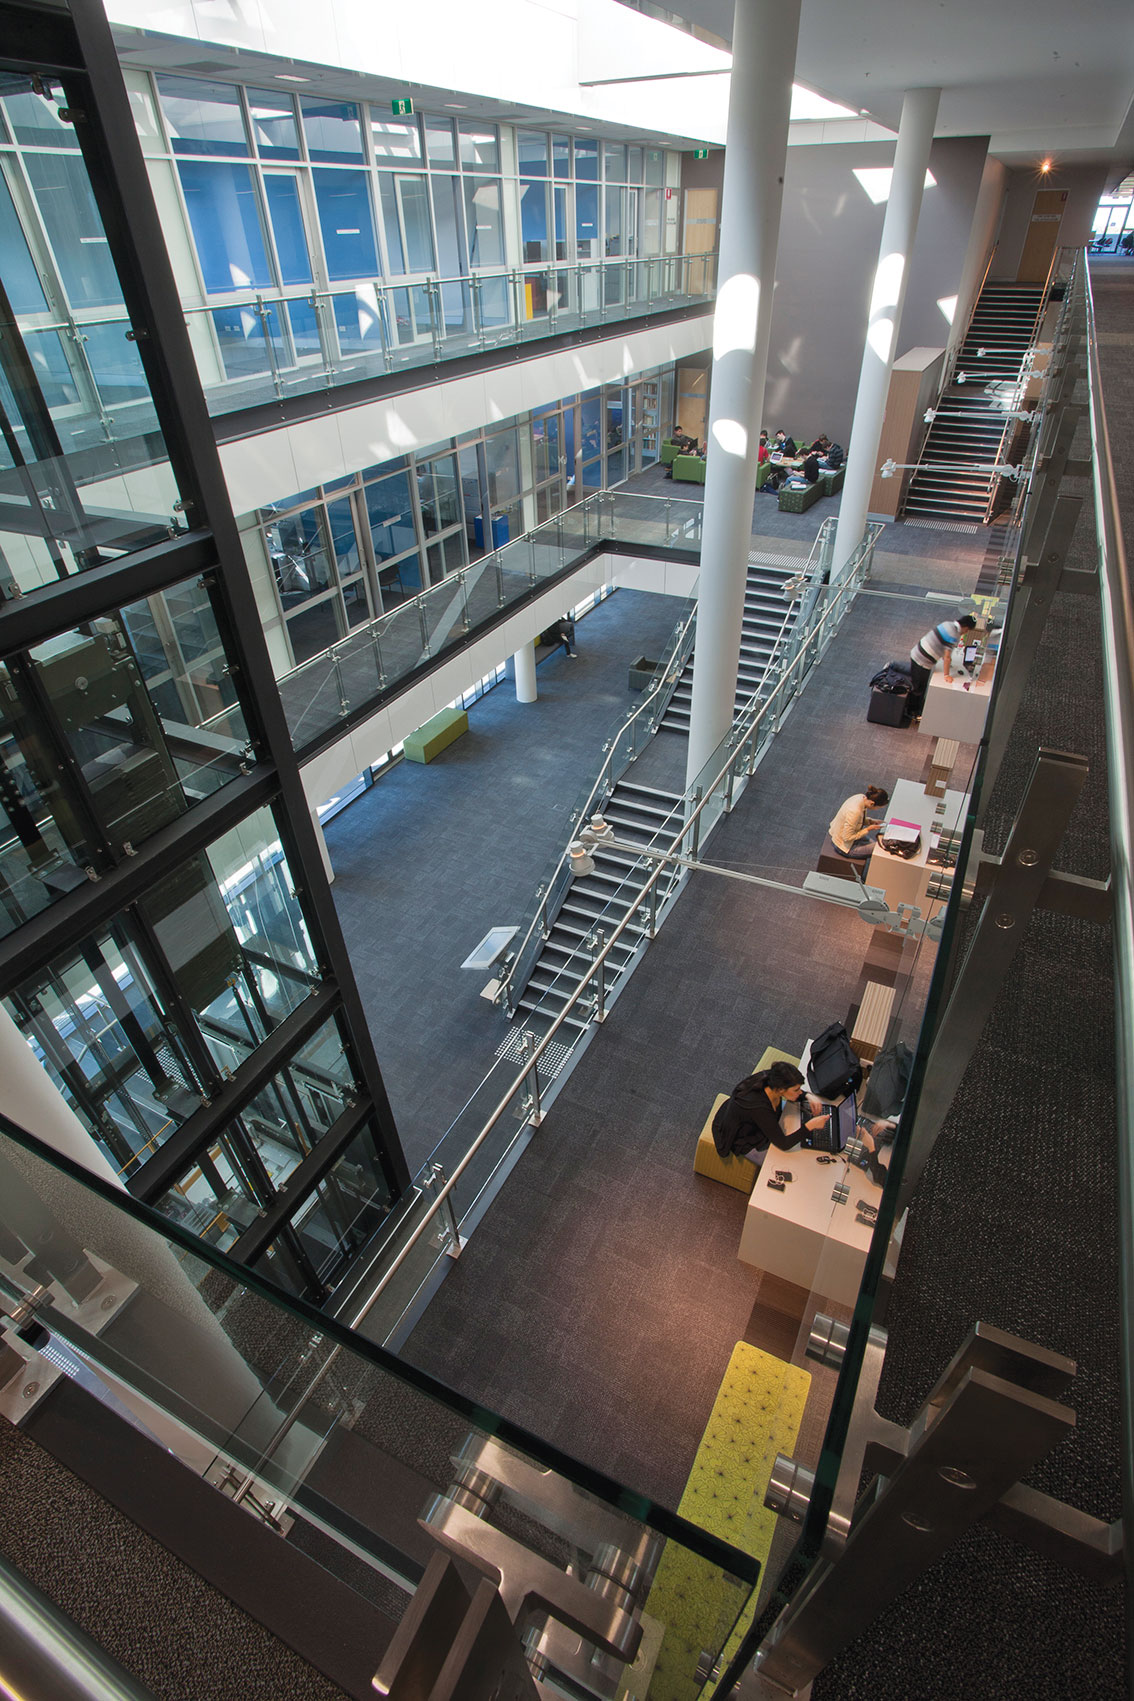 University of Wollongong's SMART Infrastructure Facility